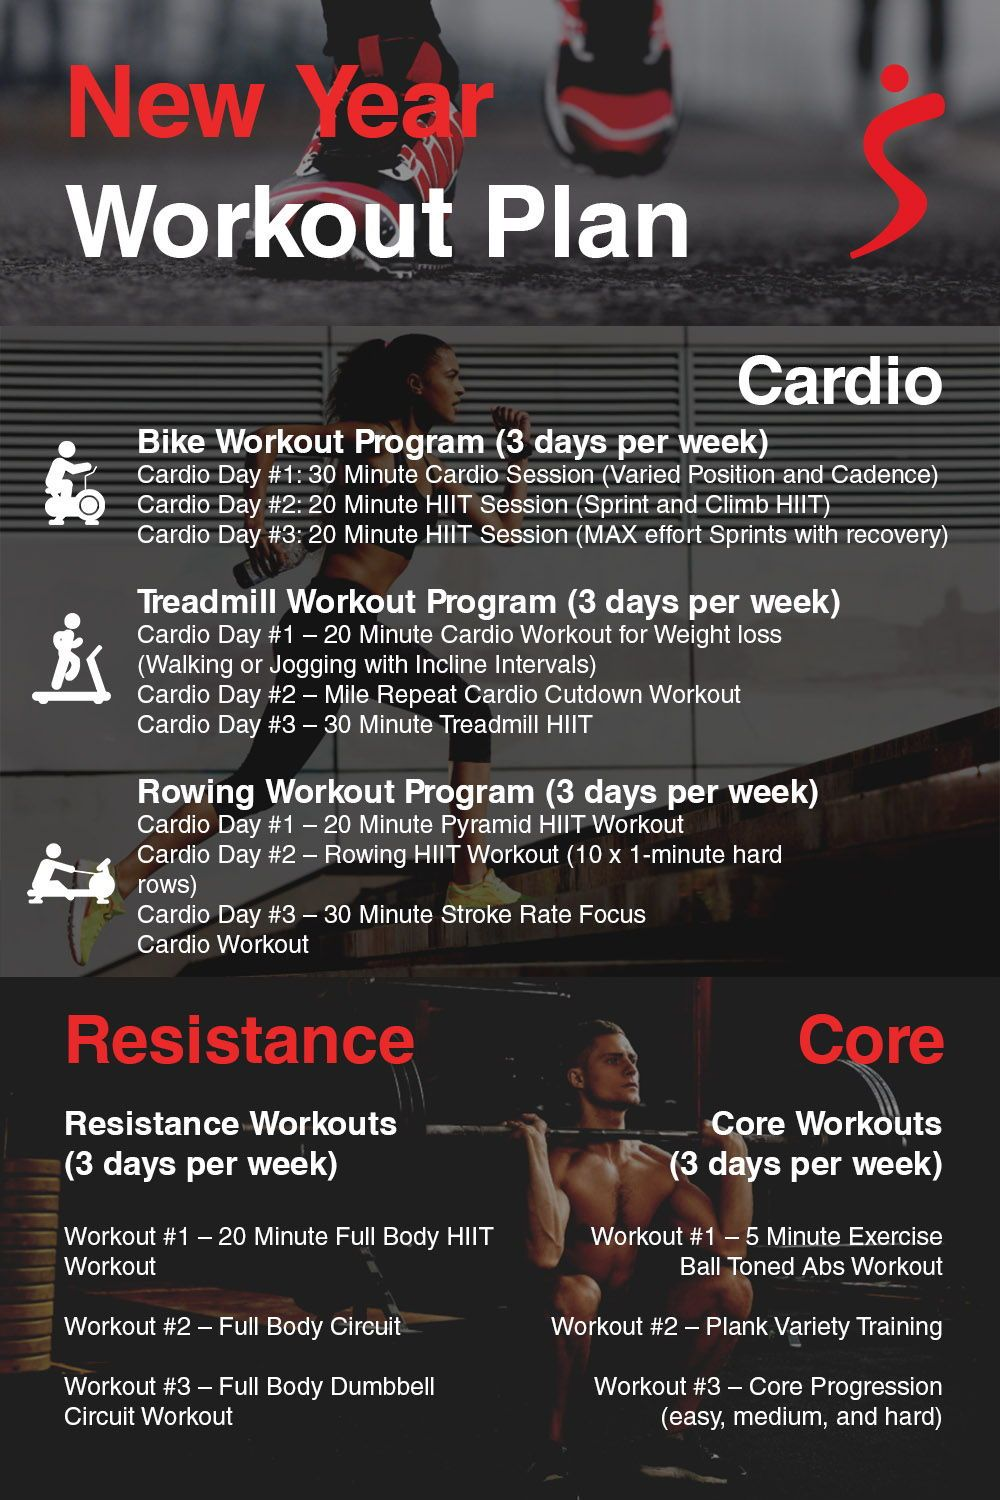 38+ Choice health and fitness schedule ideas in 2021